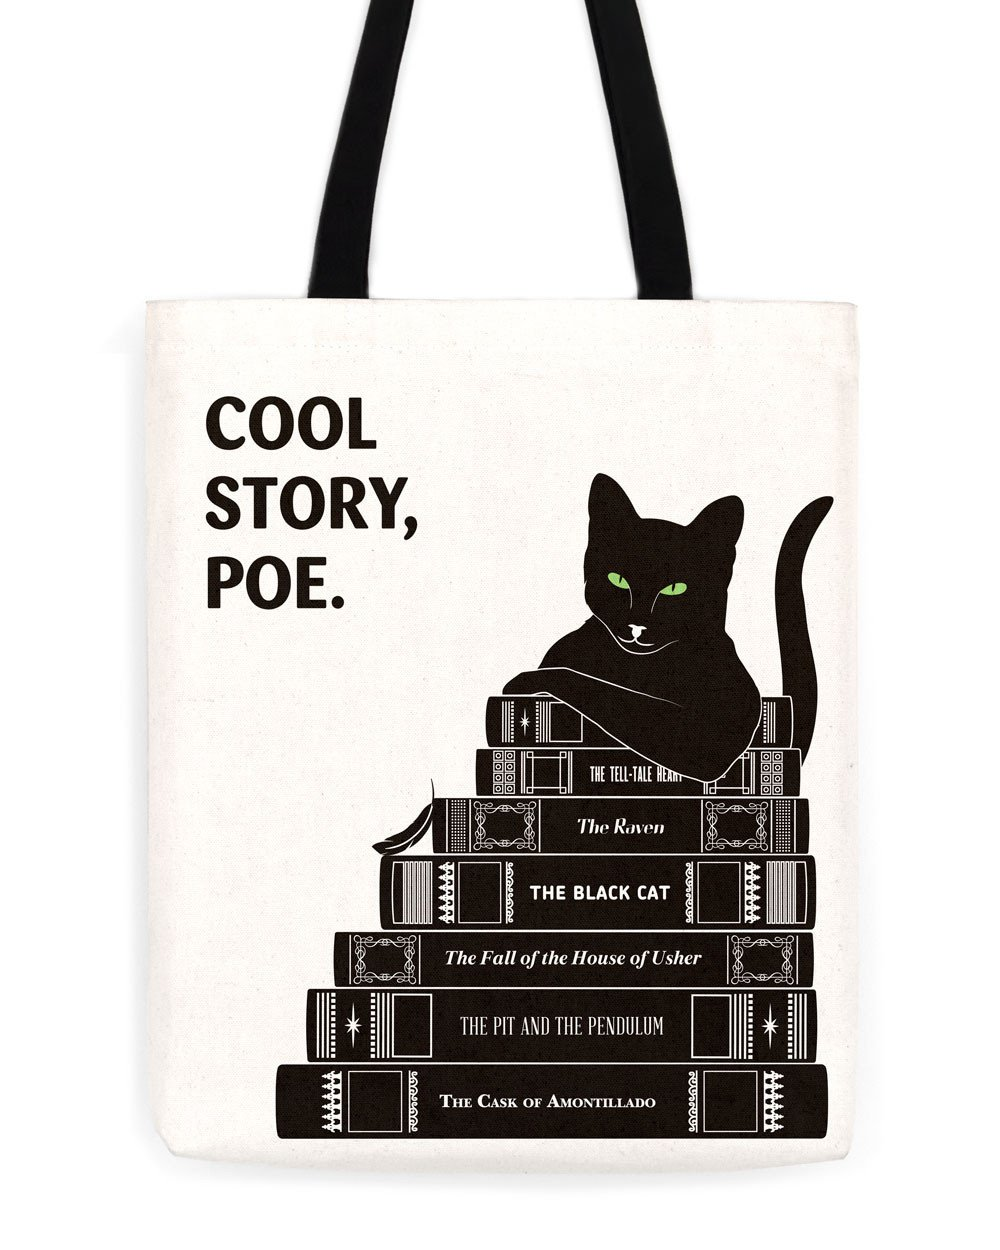 This tote from Obvious State for the cat-loving, Poe-reading person in your life